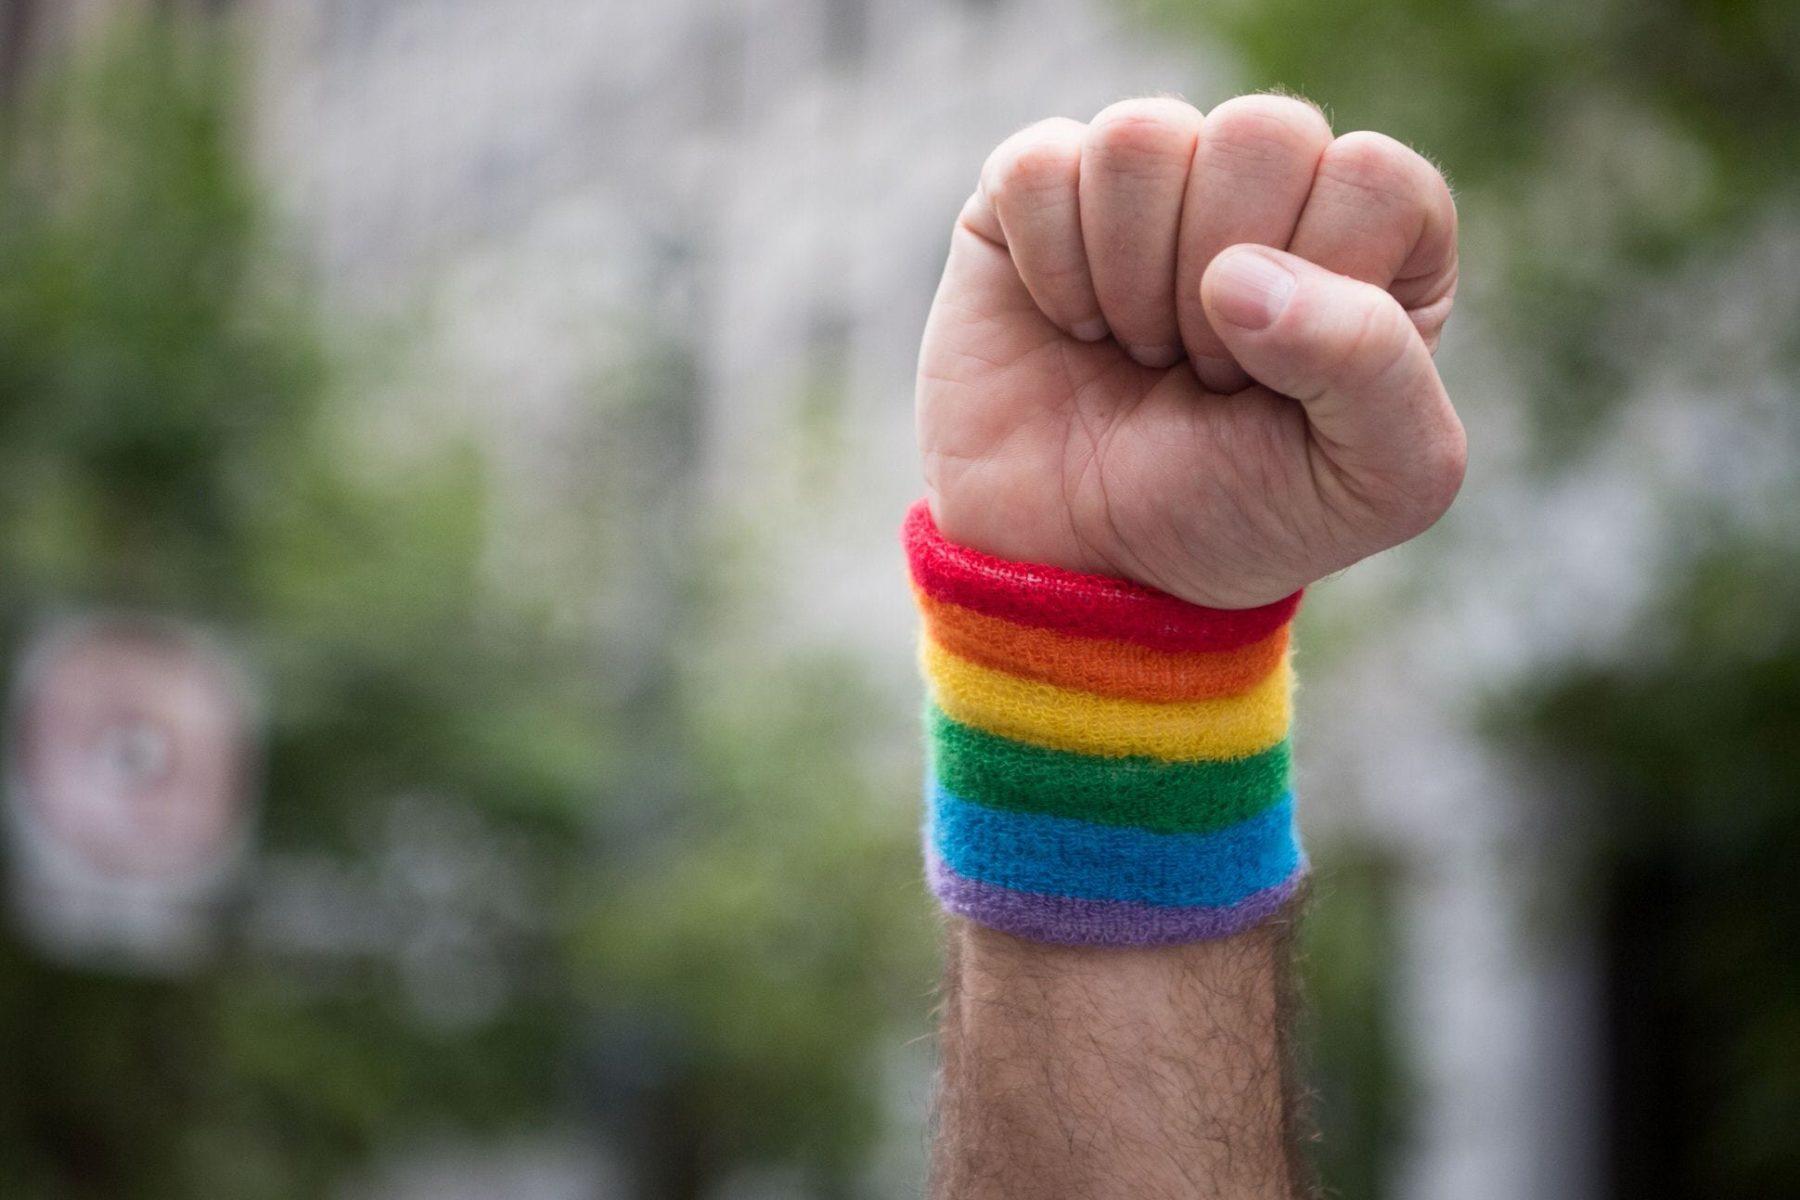 A fist raised in the air with a rainbow cuff.